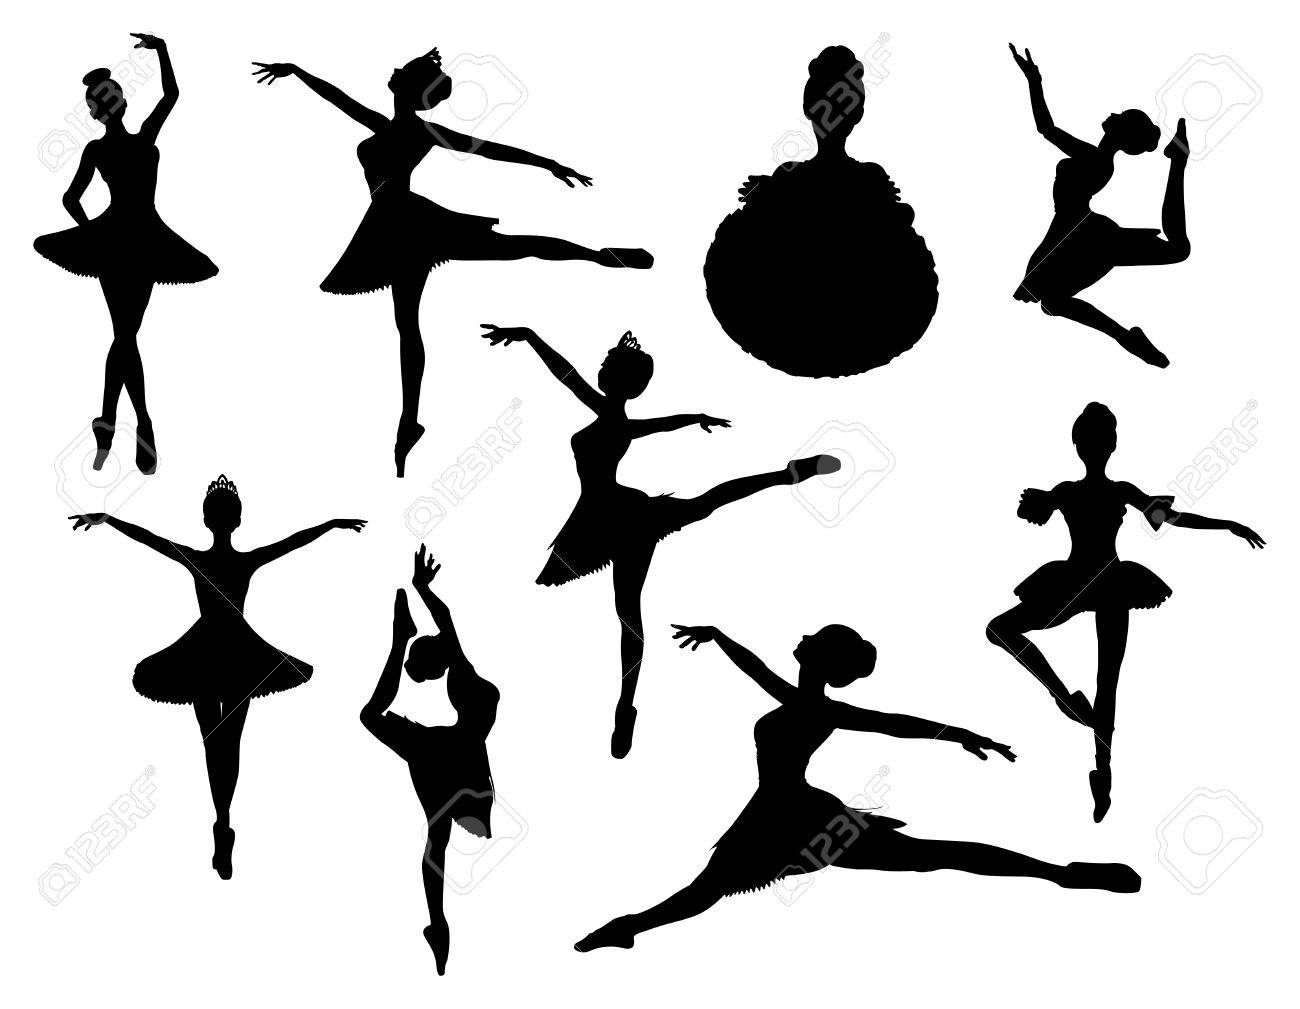 ballerina vector silhouette royalty free cliparts vectors and rh 123rf com ballerina vector image ballerina vector art